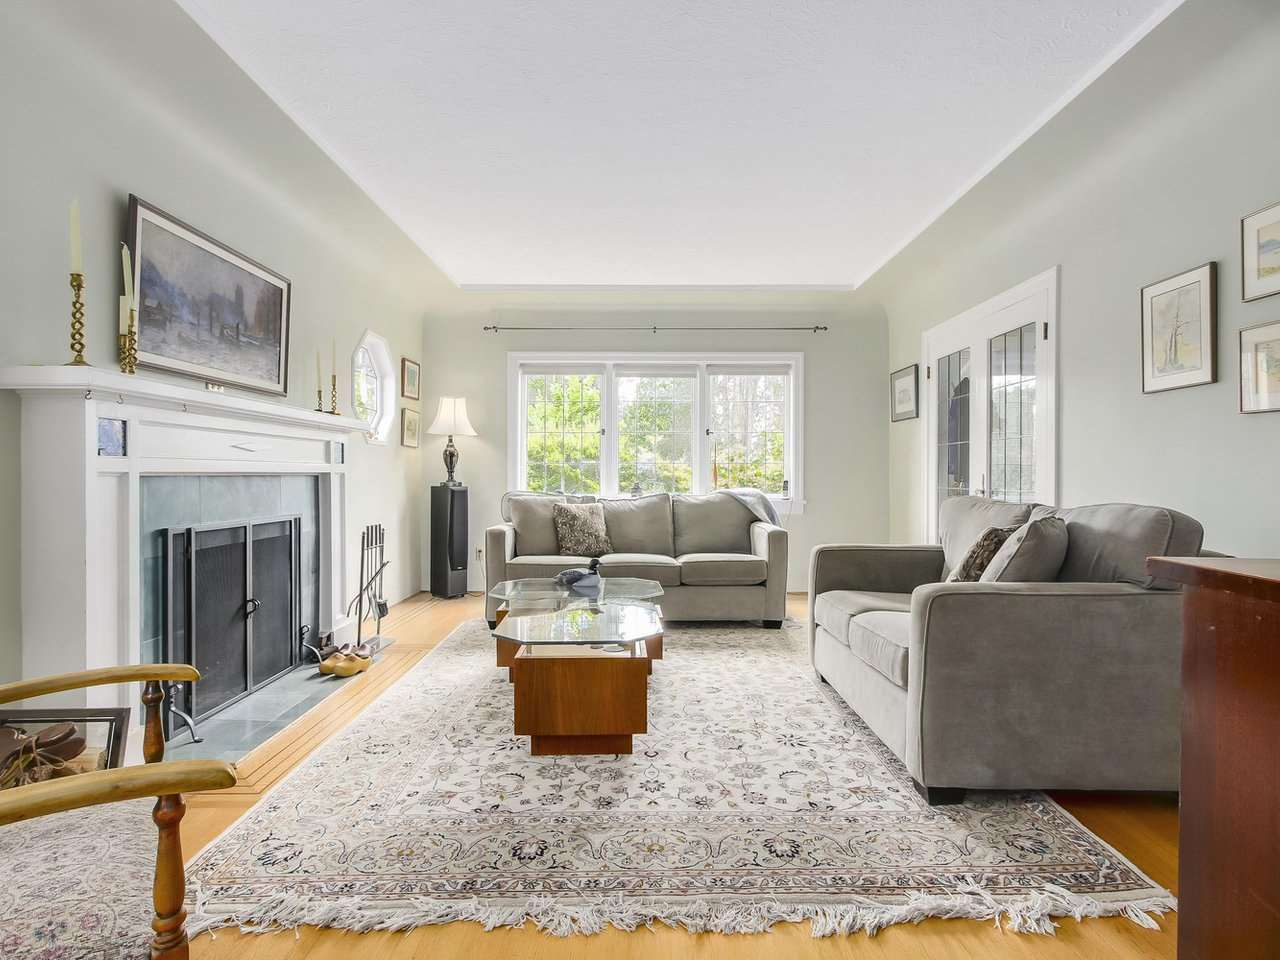 Photo 3: 3939 W KING EDWARD Avenue in Vancouver: Dunbar House for sale (Vancouver West)  : MLS® # R2191736